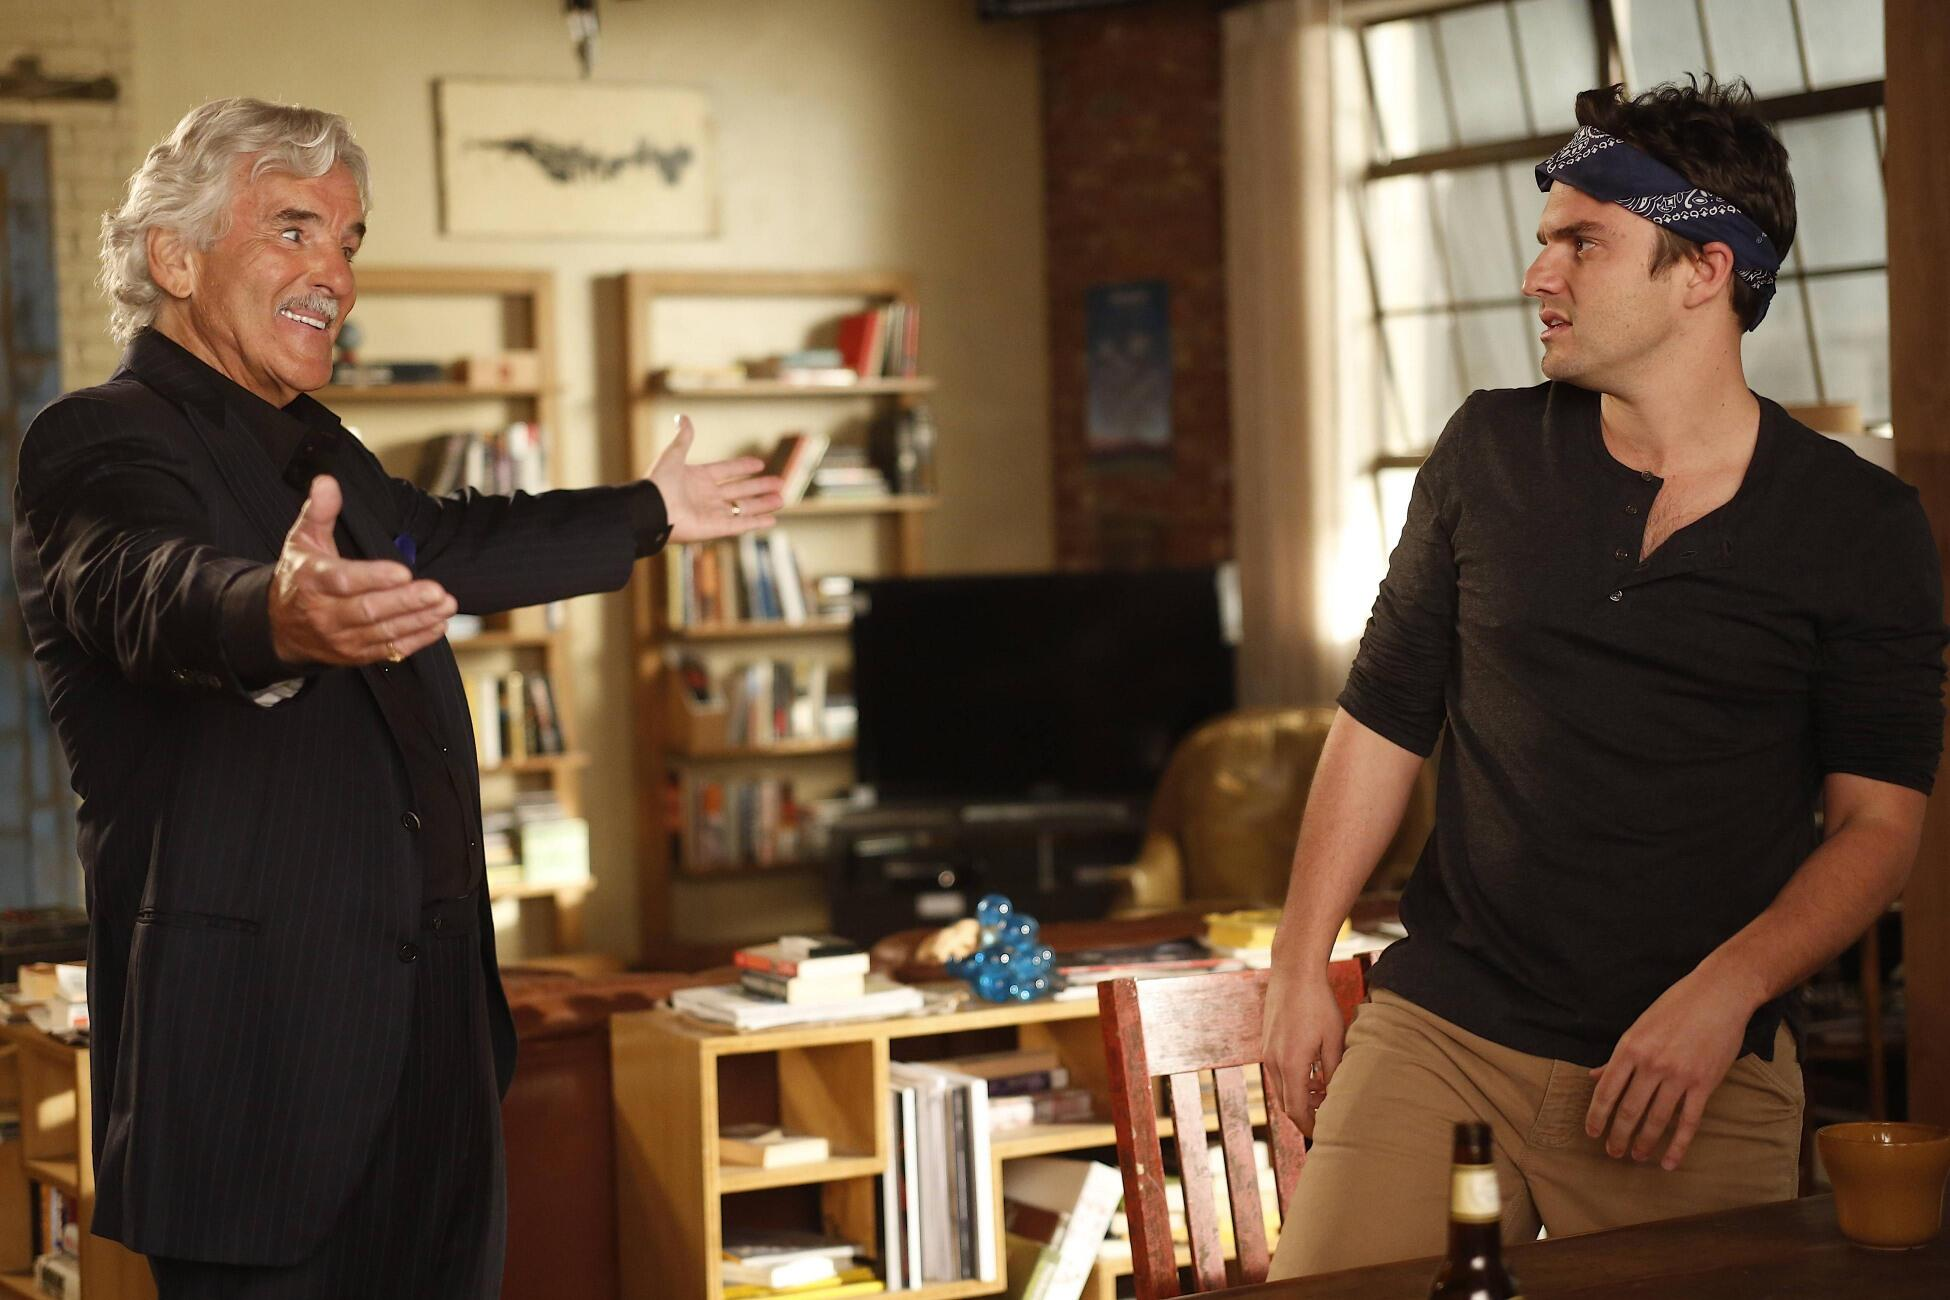 RT @NewGirlonFOX: From everyone at New Girl: We will miss our friend Dennis Farina. #newgirl http://t.co/qrLhm5GUML